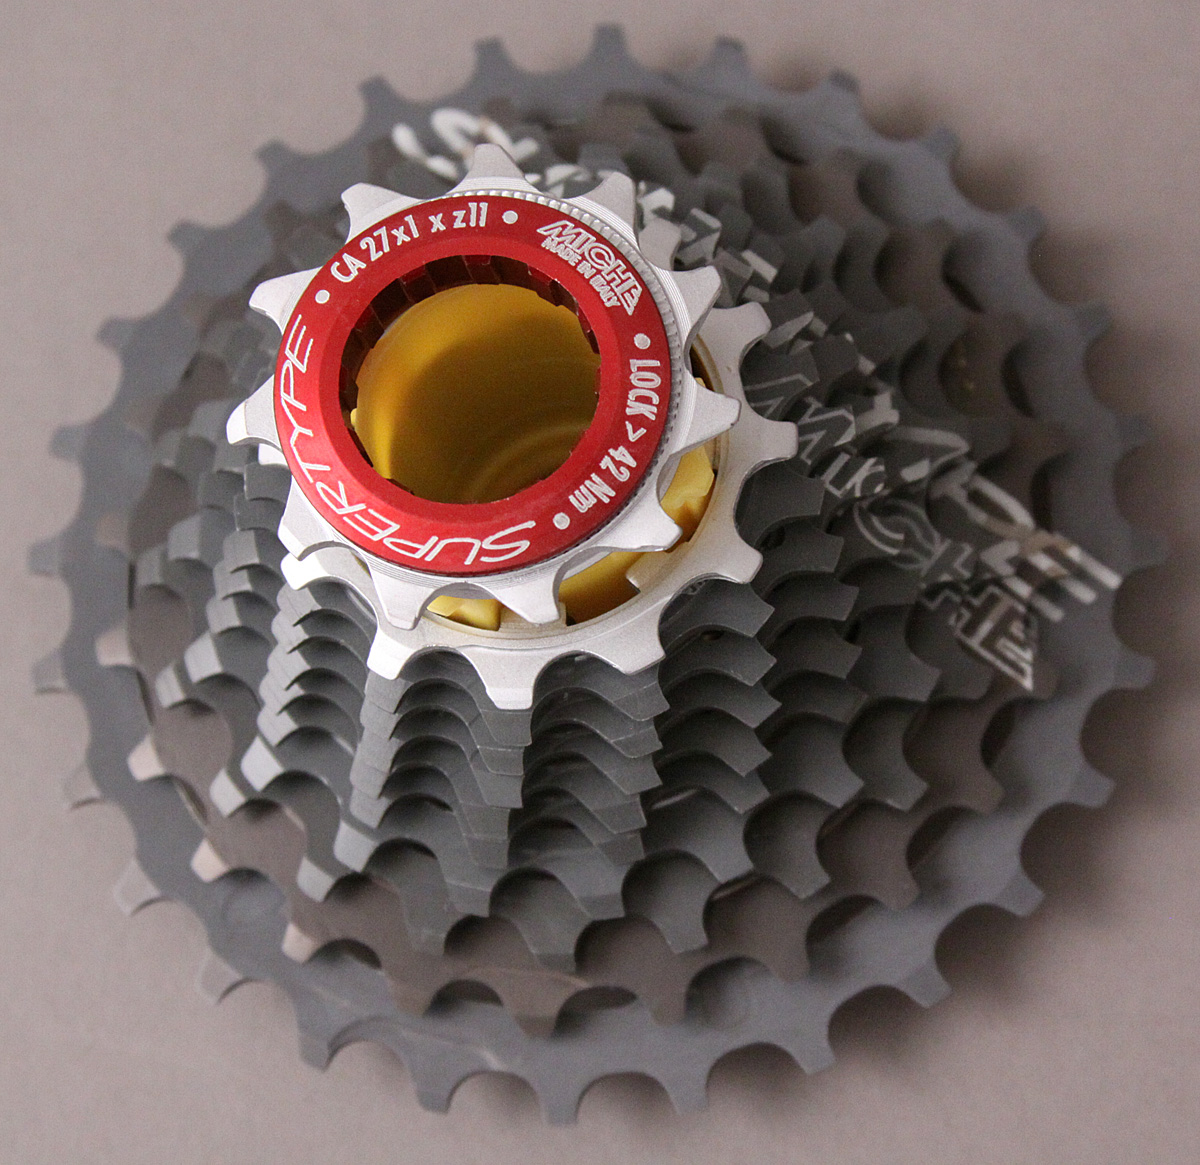 Miche Supertype Cassette 11-23 Campagnolo Spline For Race Day!